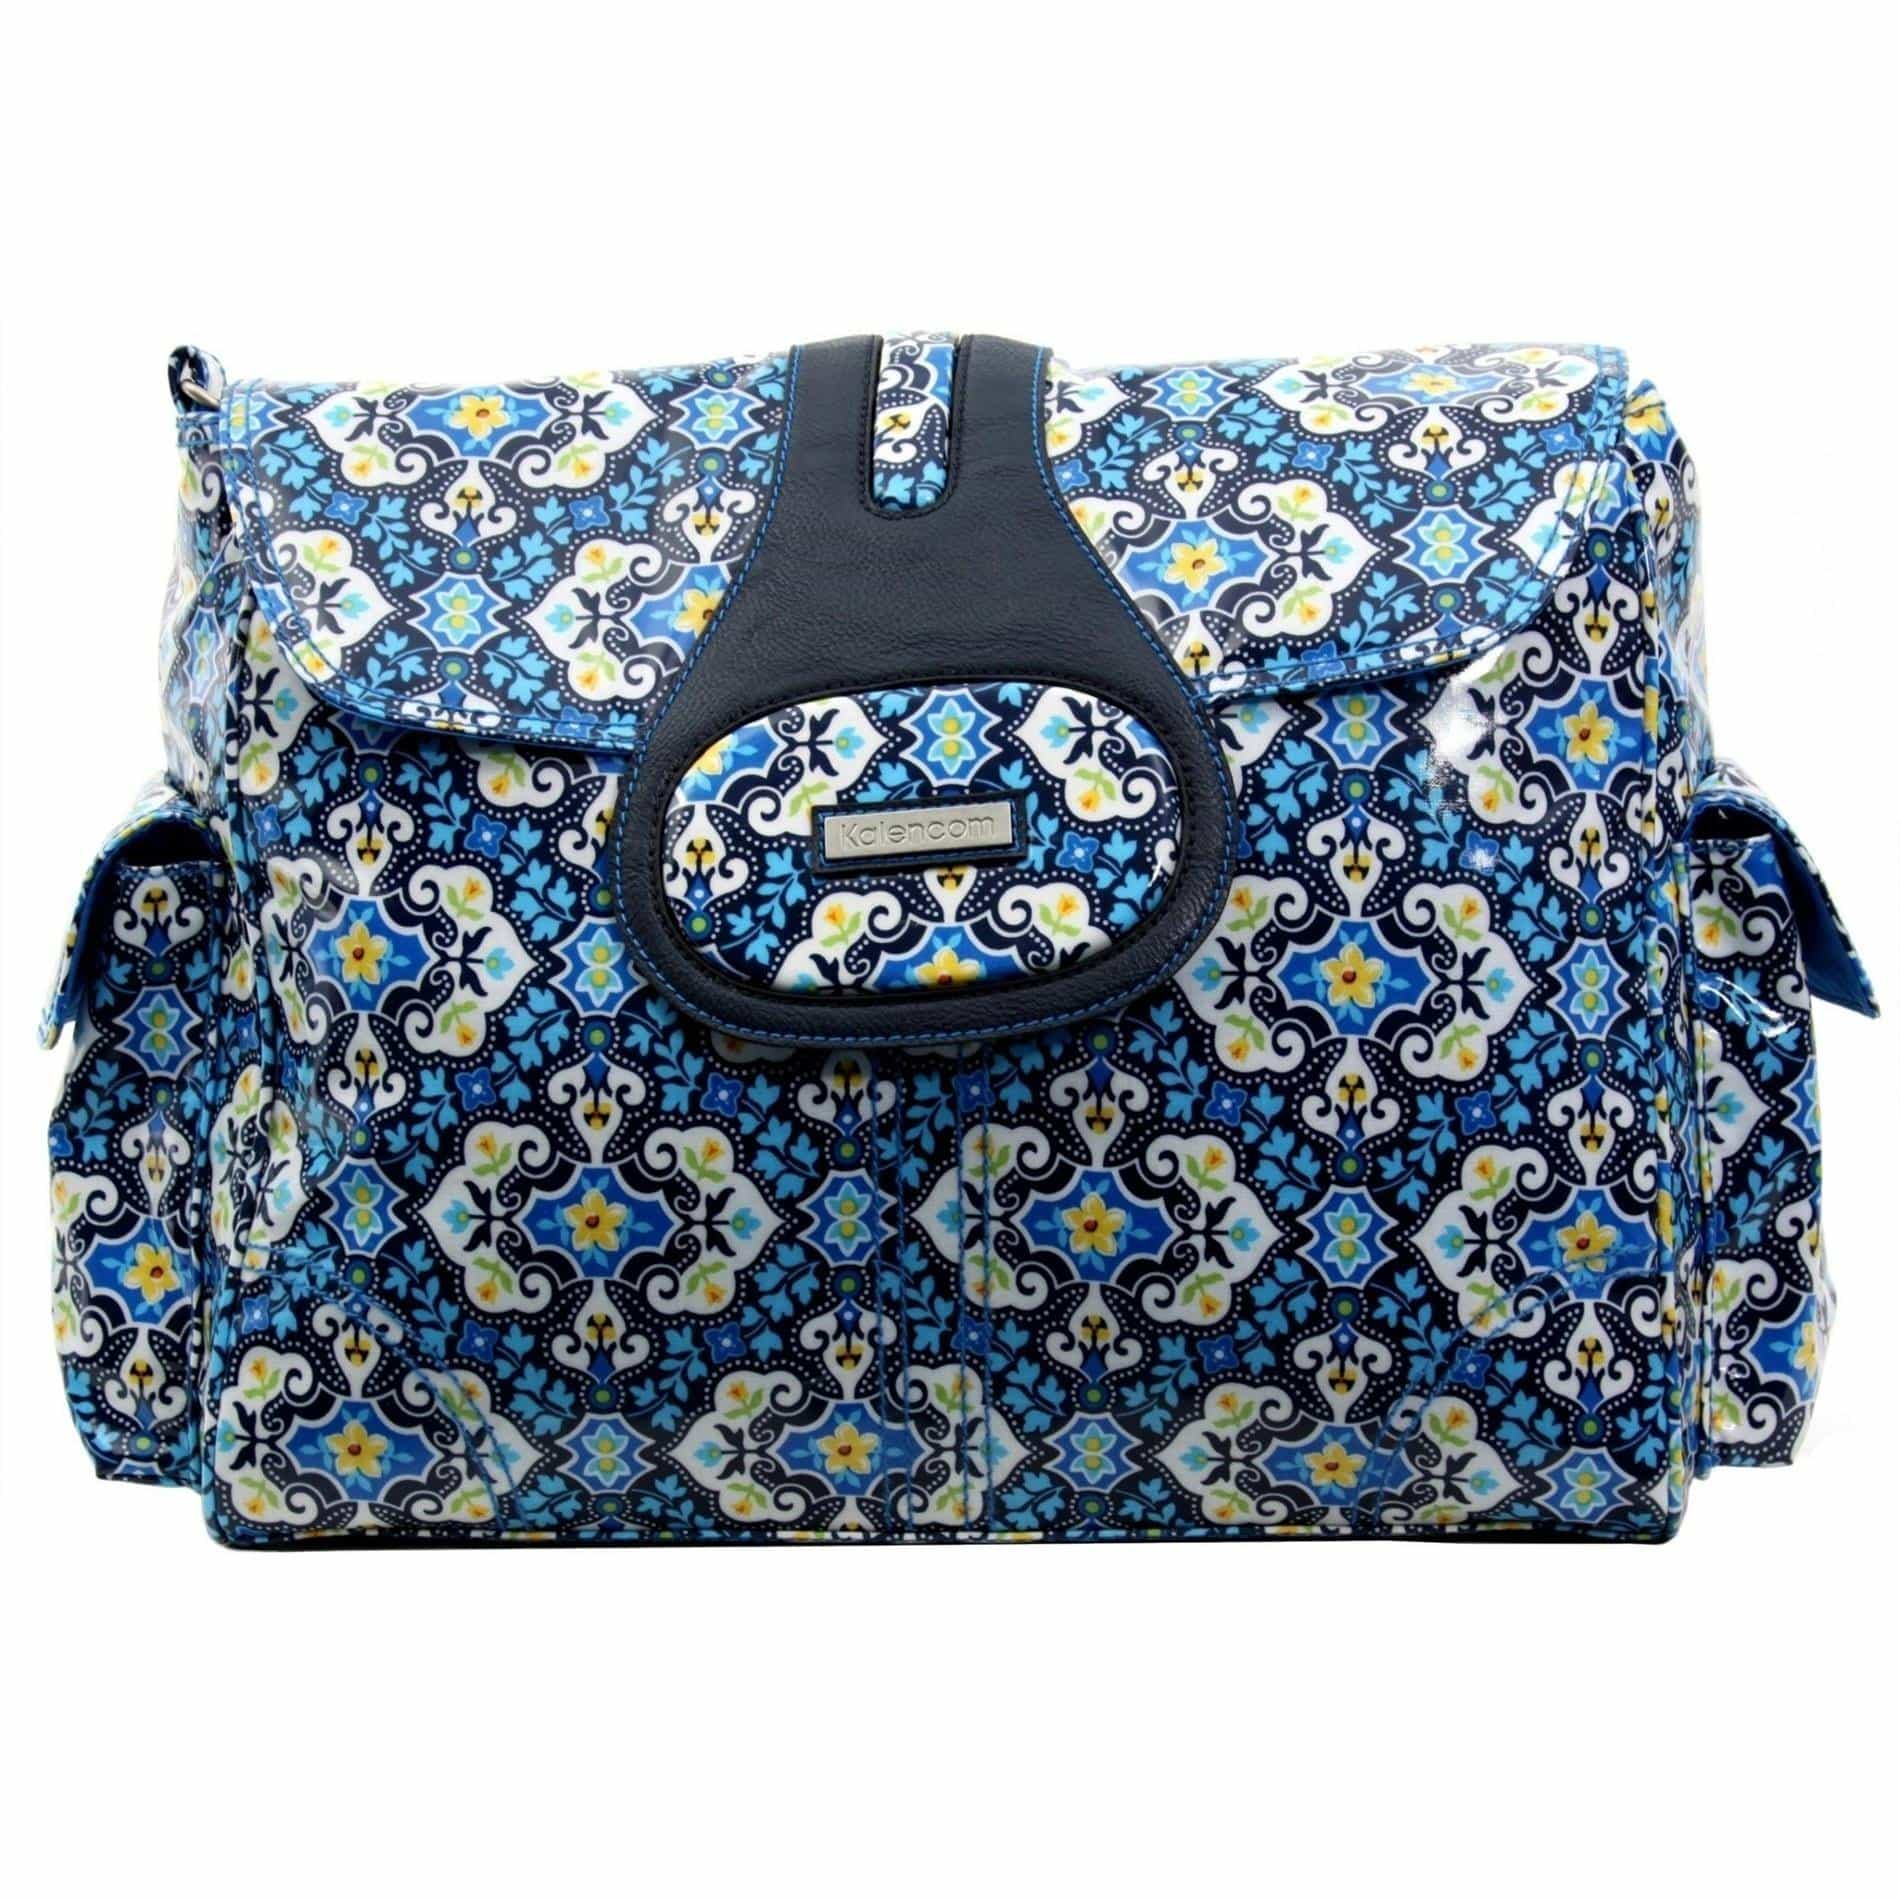 Garden Charm Indigo Elite Coated Diaper Bag-Diaper Bags-Default-Jack and Jill Boutique